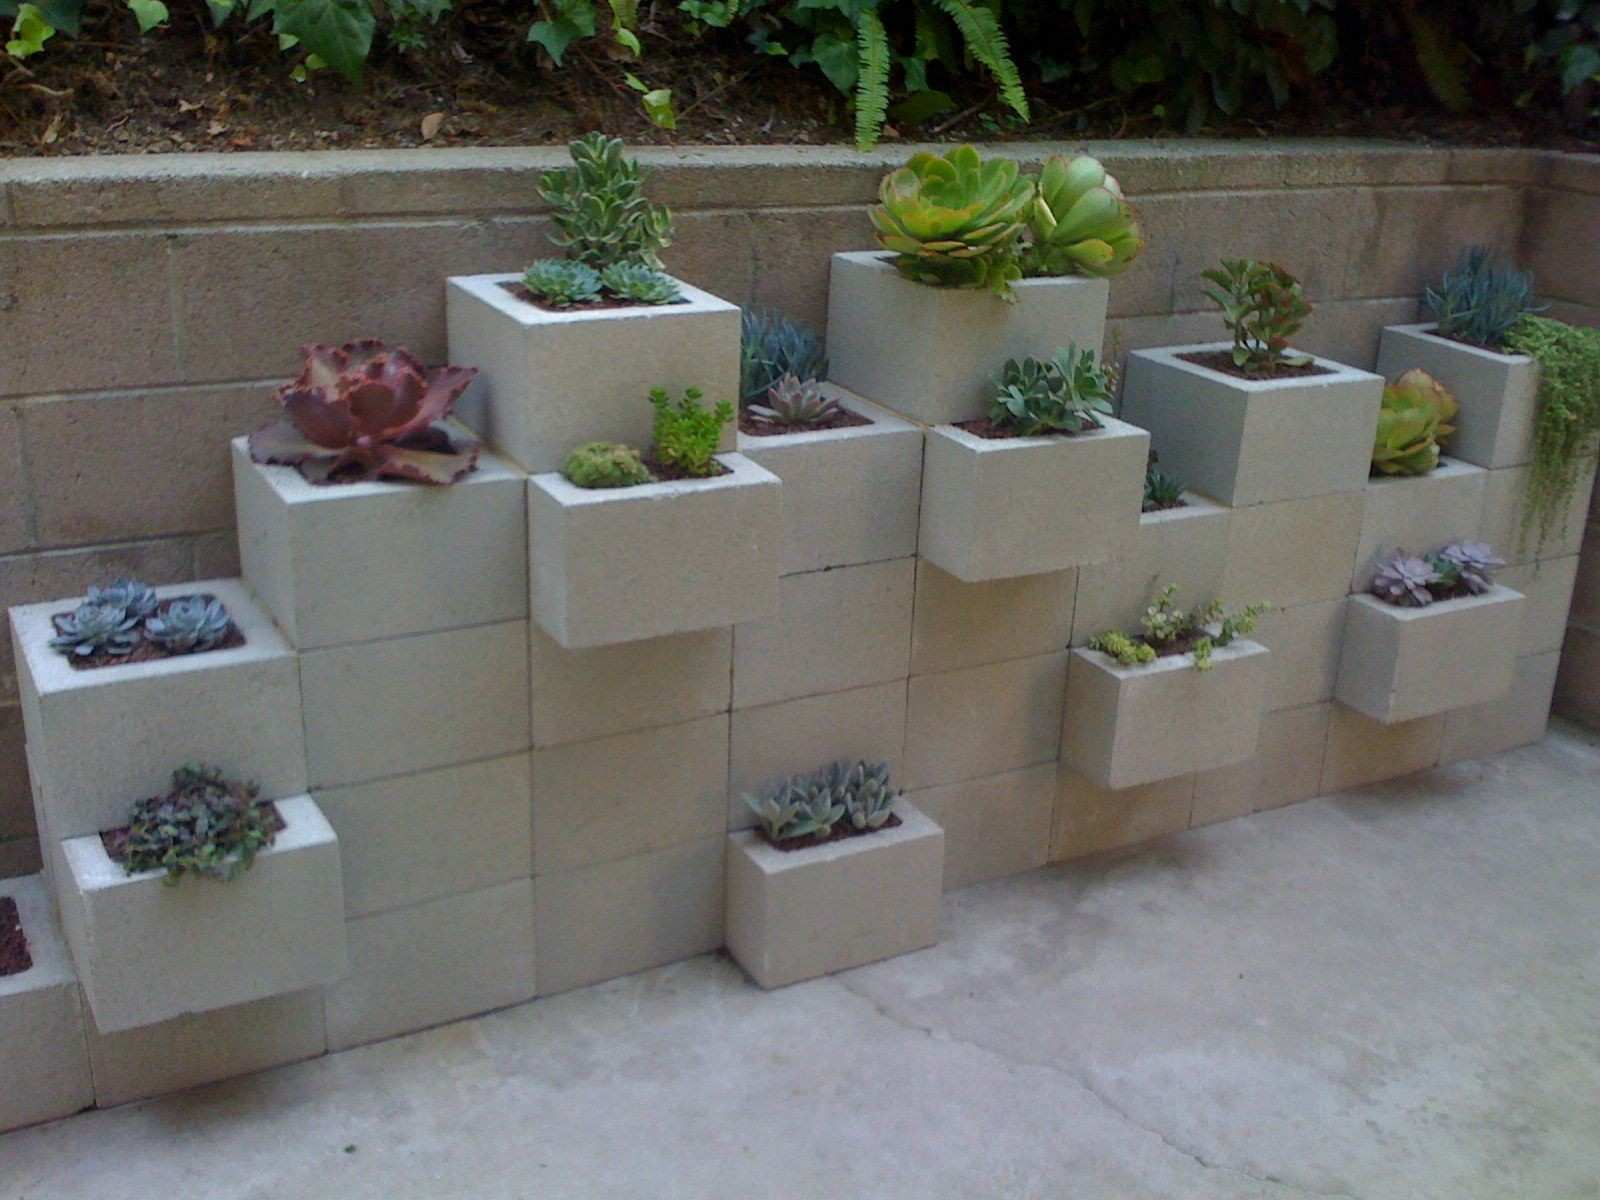 Using cinder blocks to make a planter for succulents or other plants